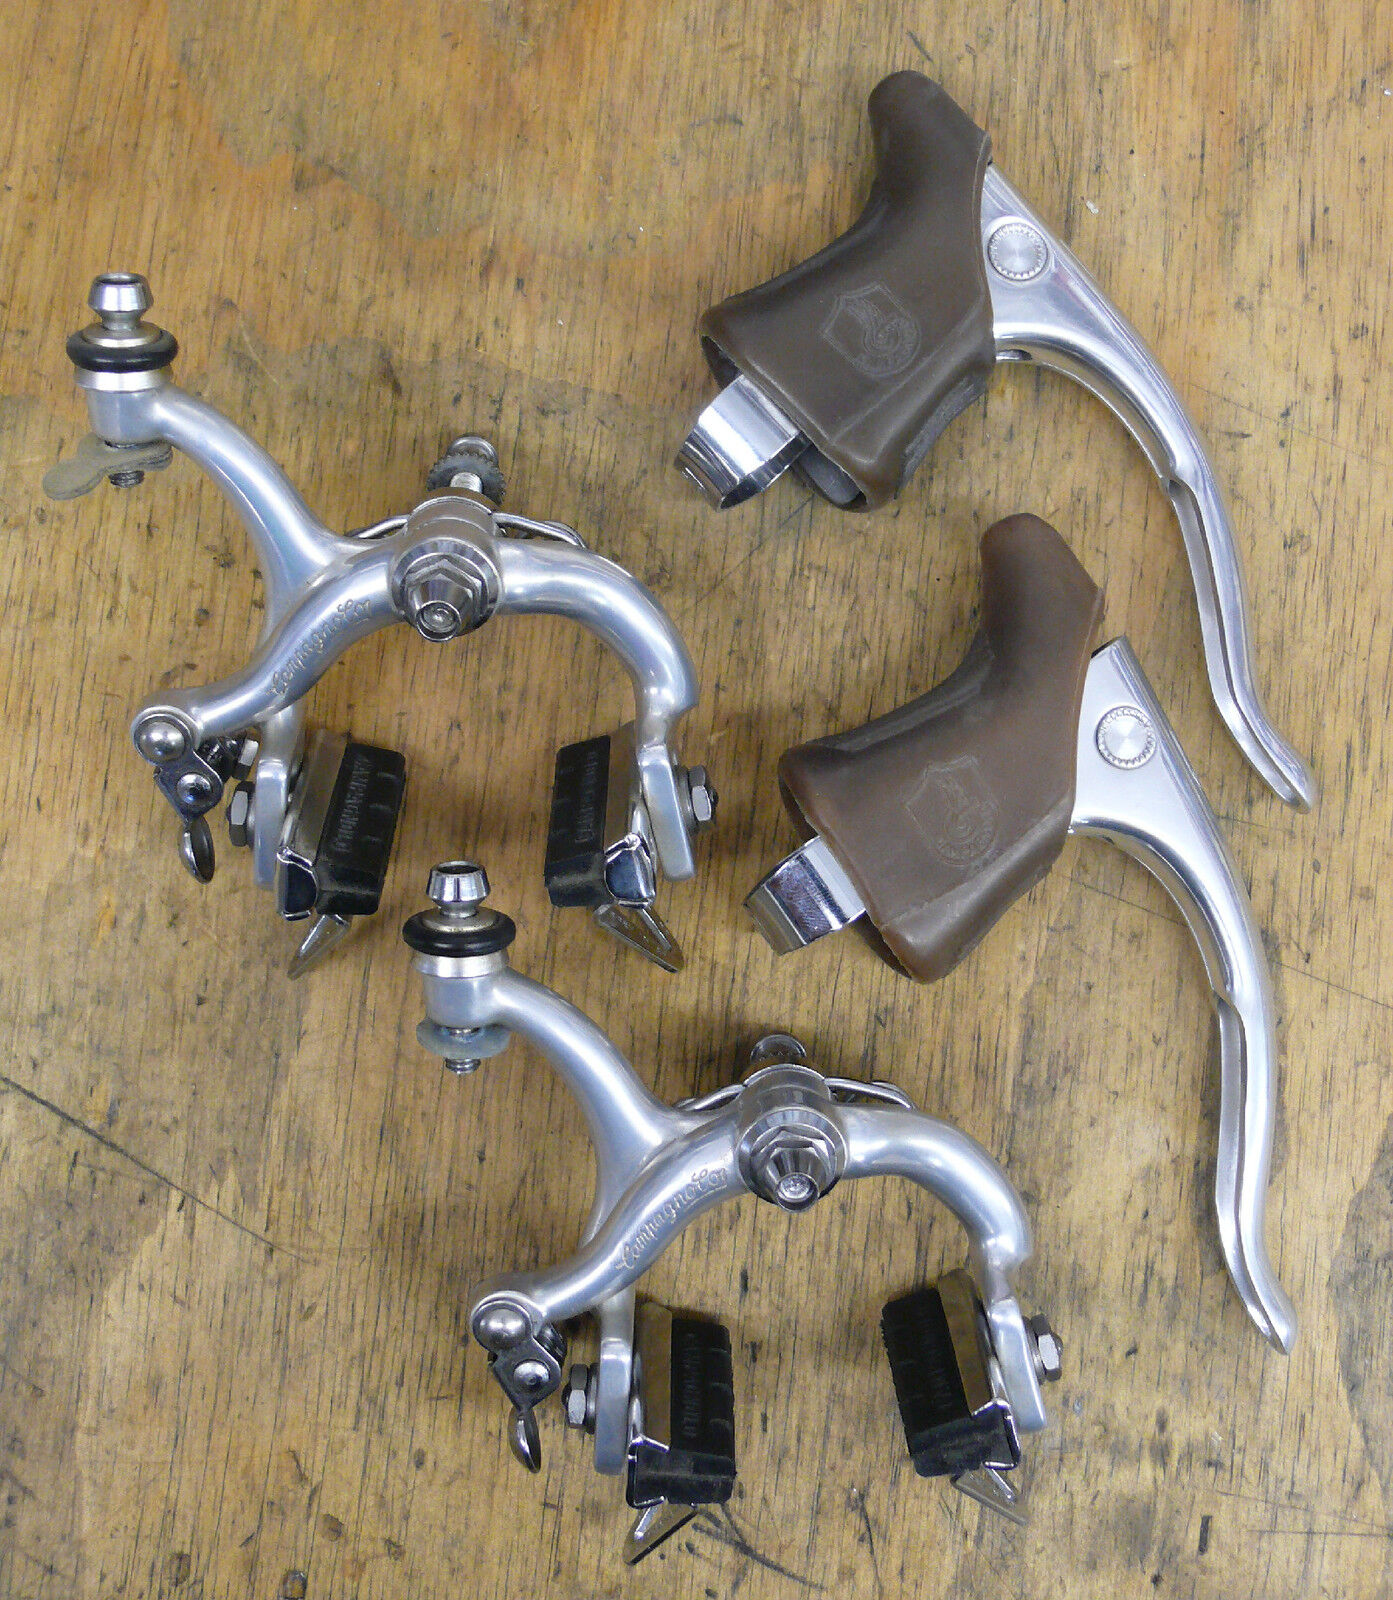 Campagnolo Brake set Triomphe 52mm reach Recessed Vintage Road Bicycle NOS